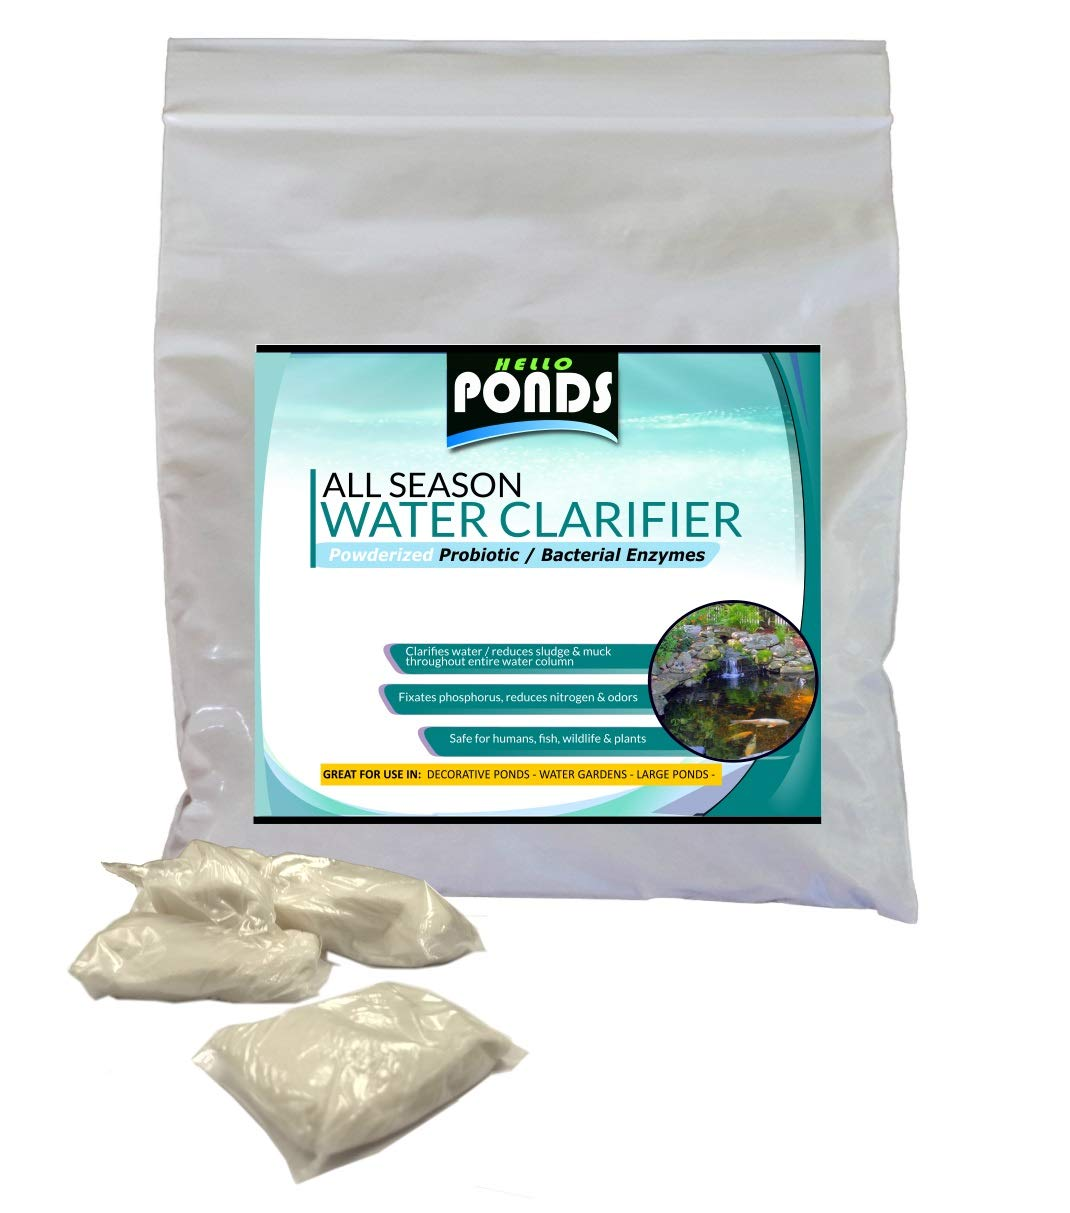 Pond Water Clarifier - Powder Bacteria for Small Ponds, Water Gardens & Koi Ponds (16 Packets)